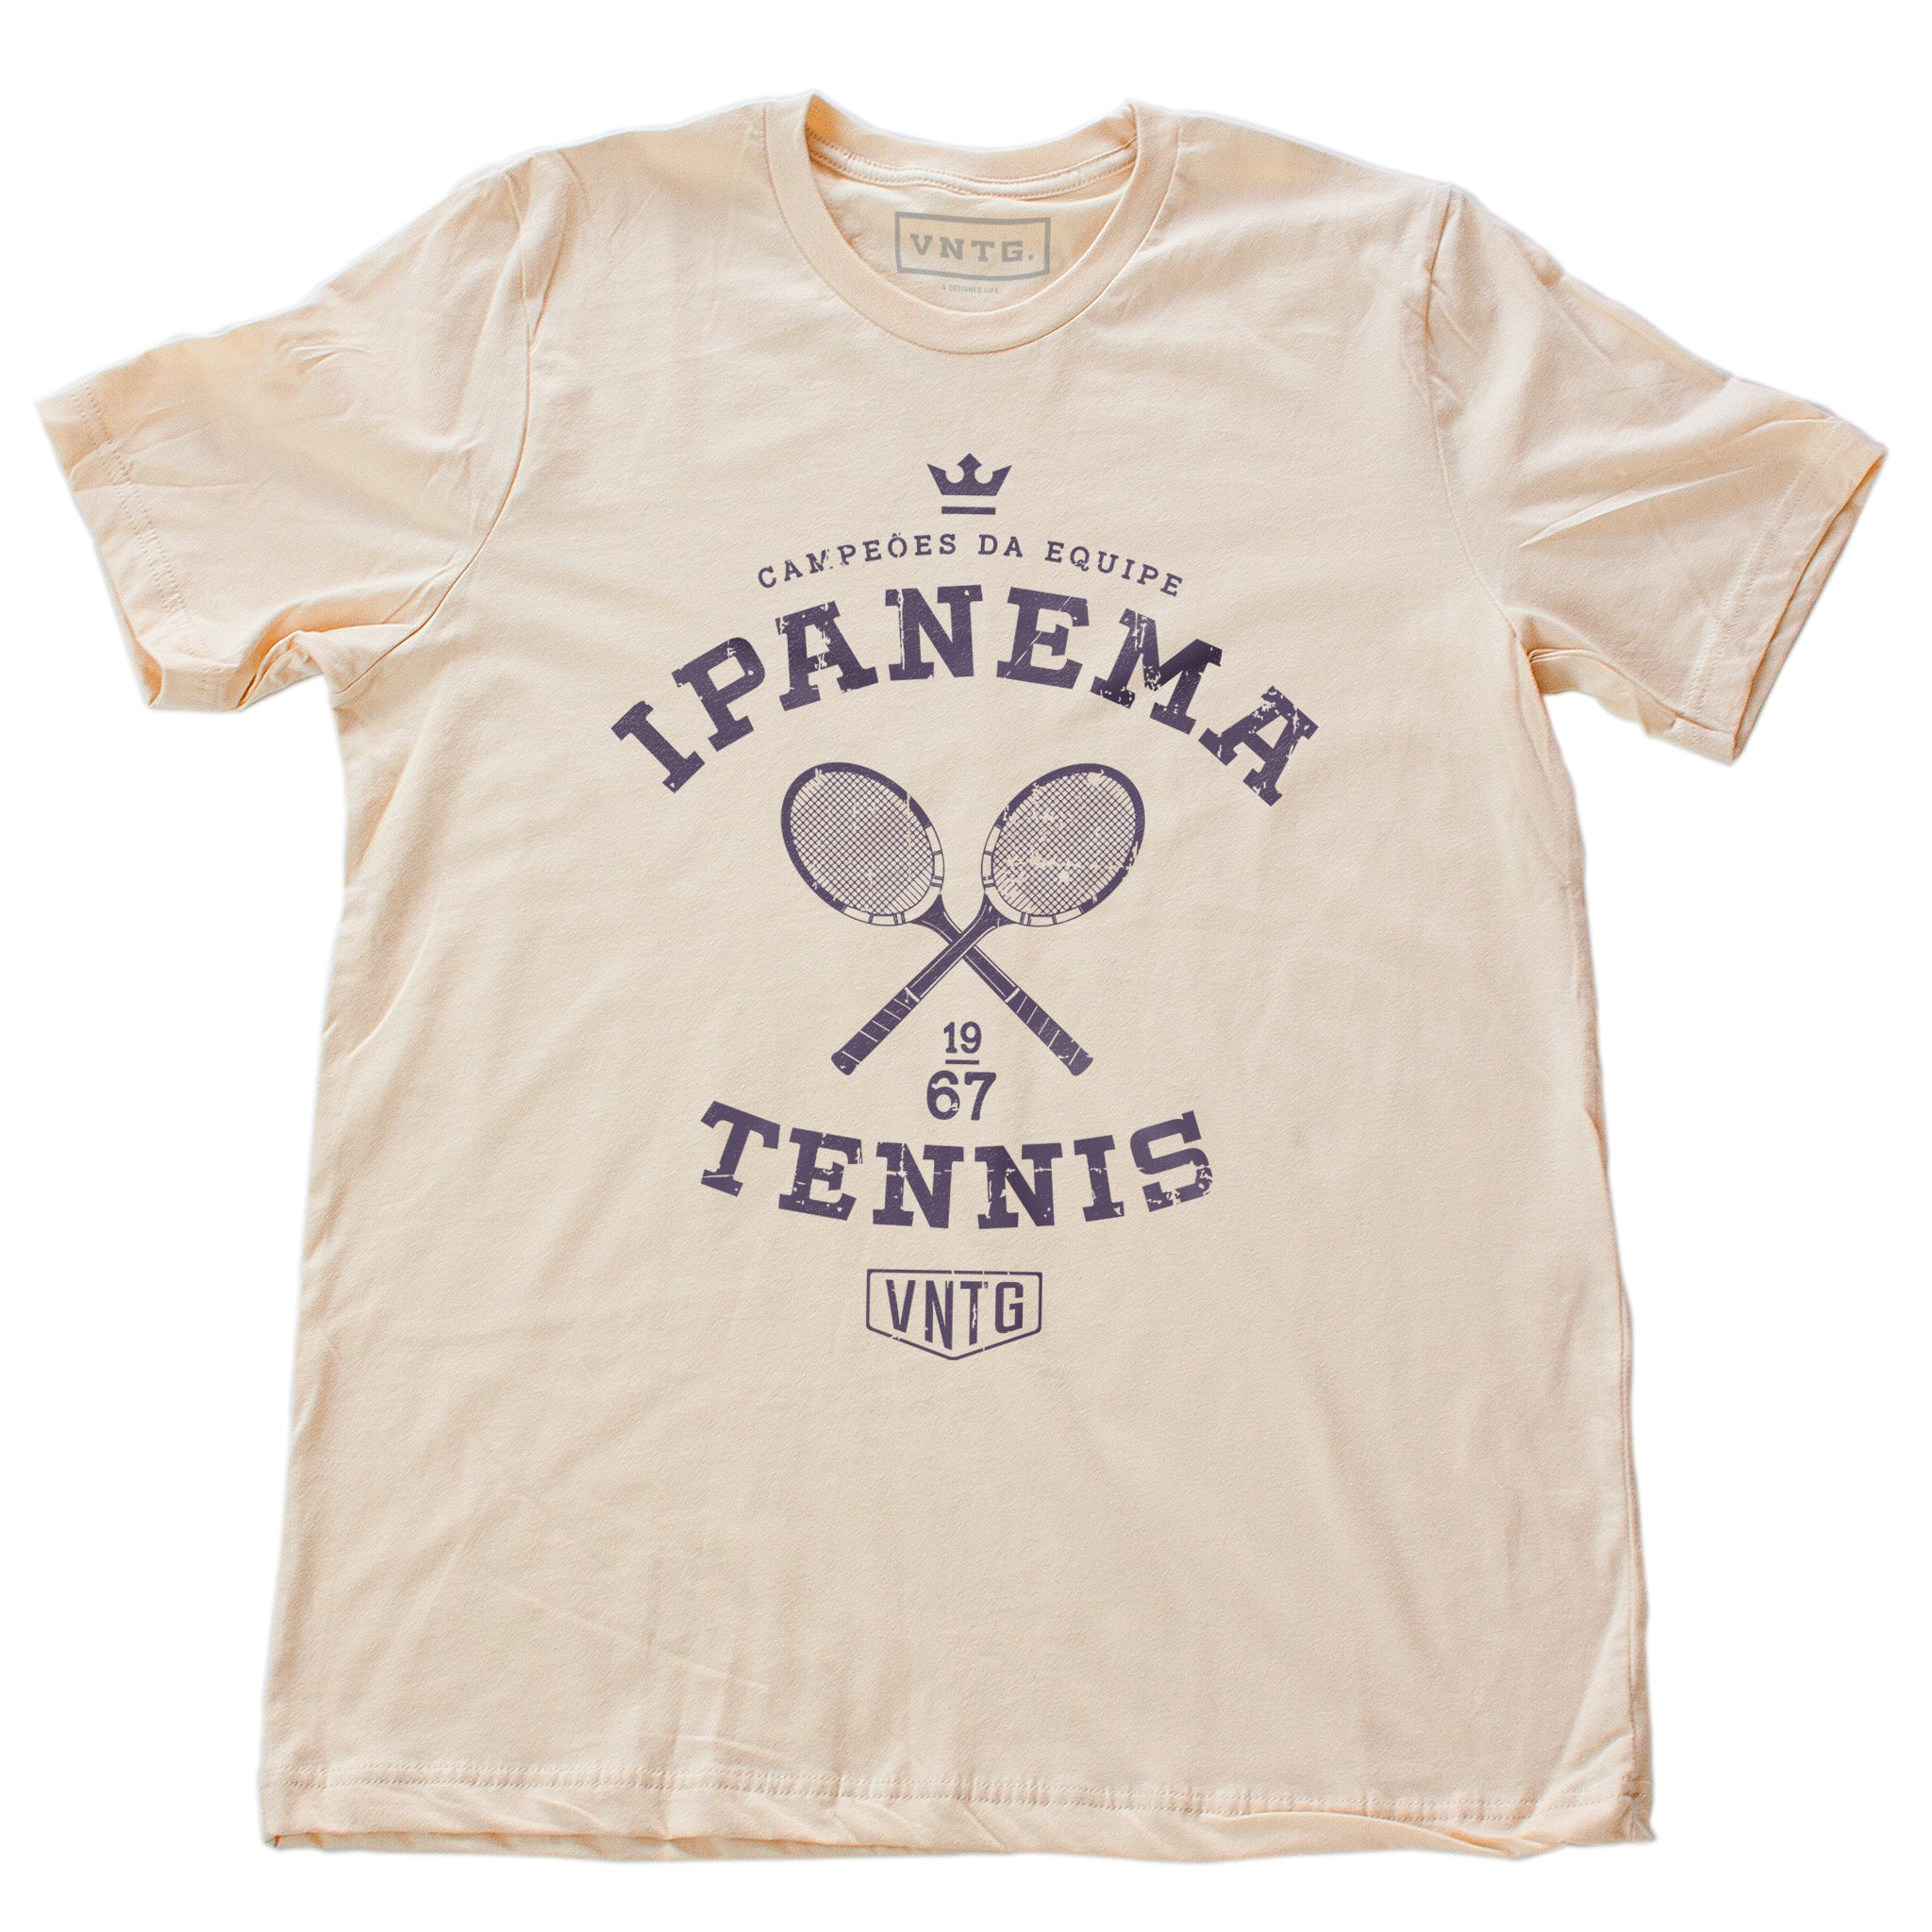 Vintage-inspired, retro graphic sports t-shirt in Soft Cream, as a 'team' shirt for a fictitious tennis team championship in Ipanema, Rio de Janeiro, Brazil. By fashion brand VNTG., from wolfsaint.net